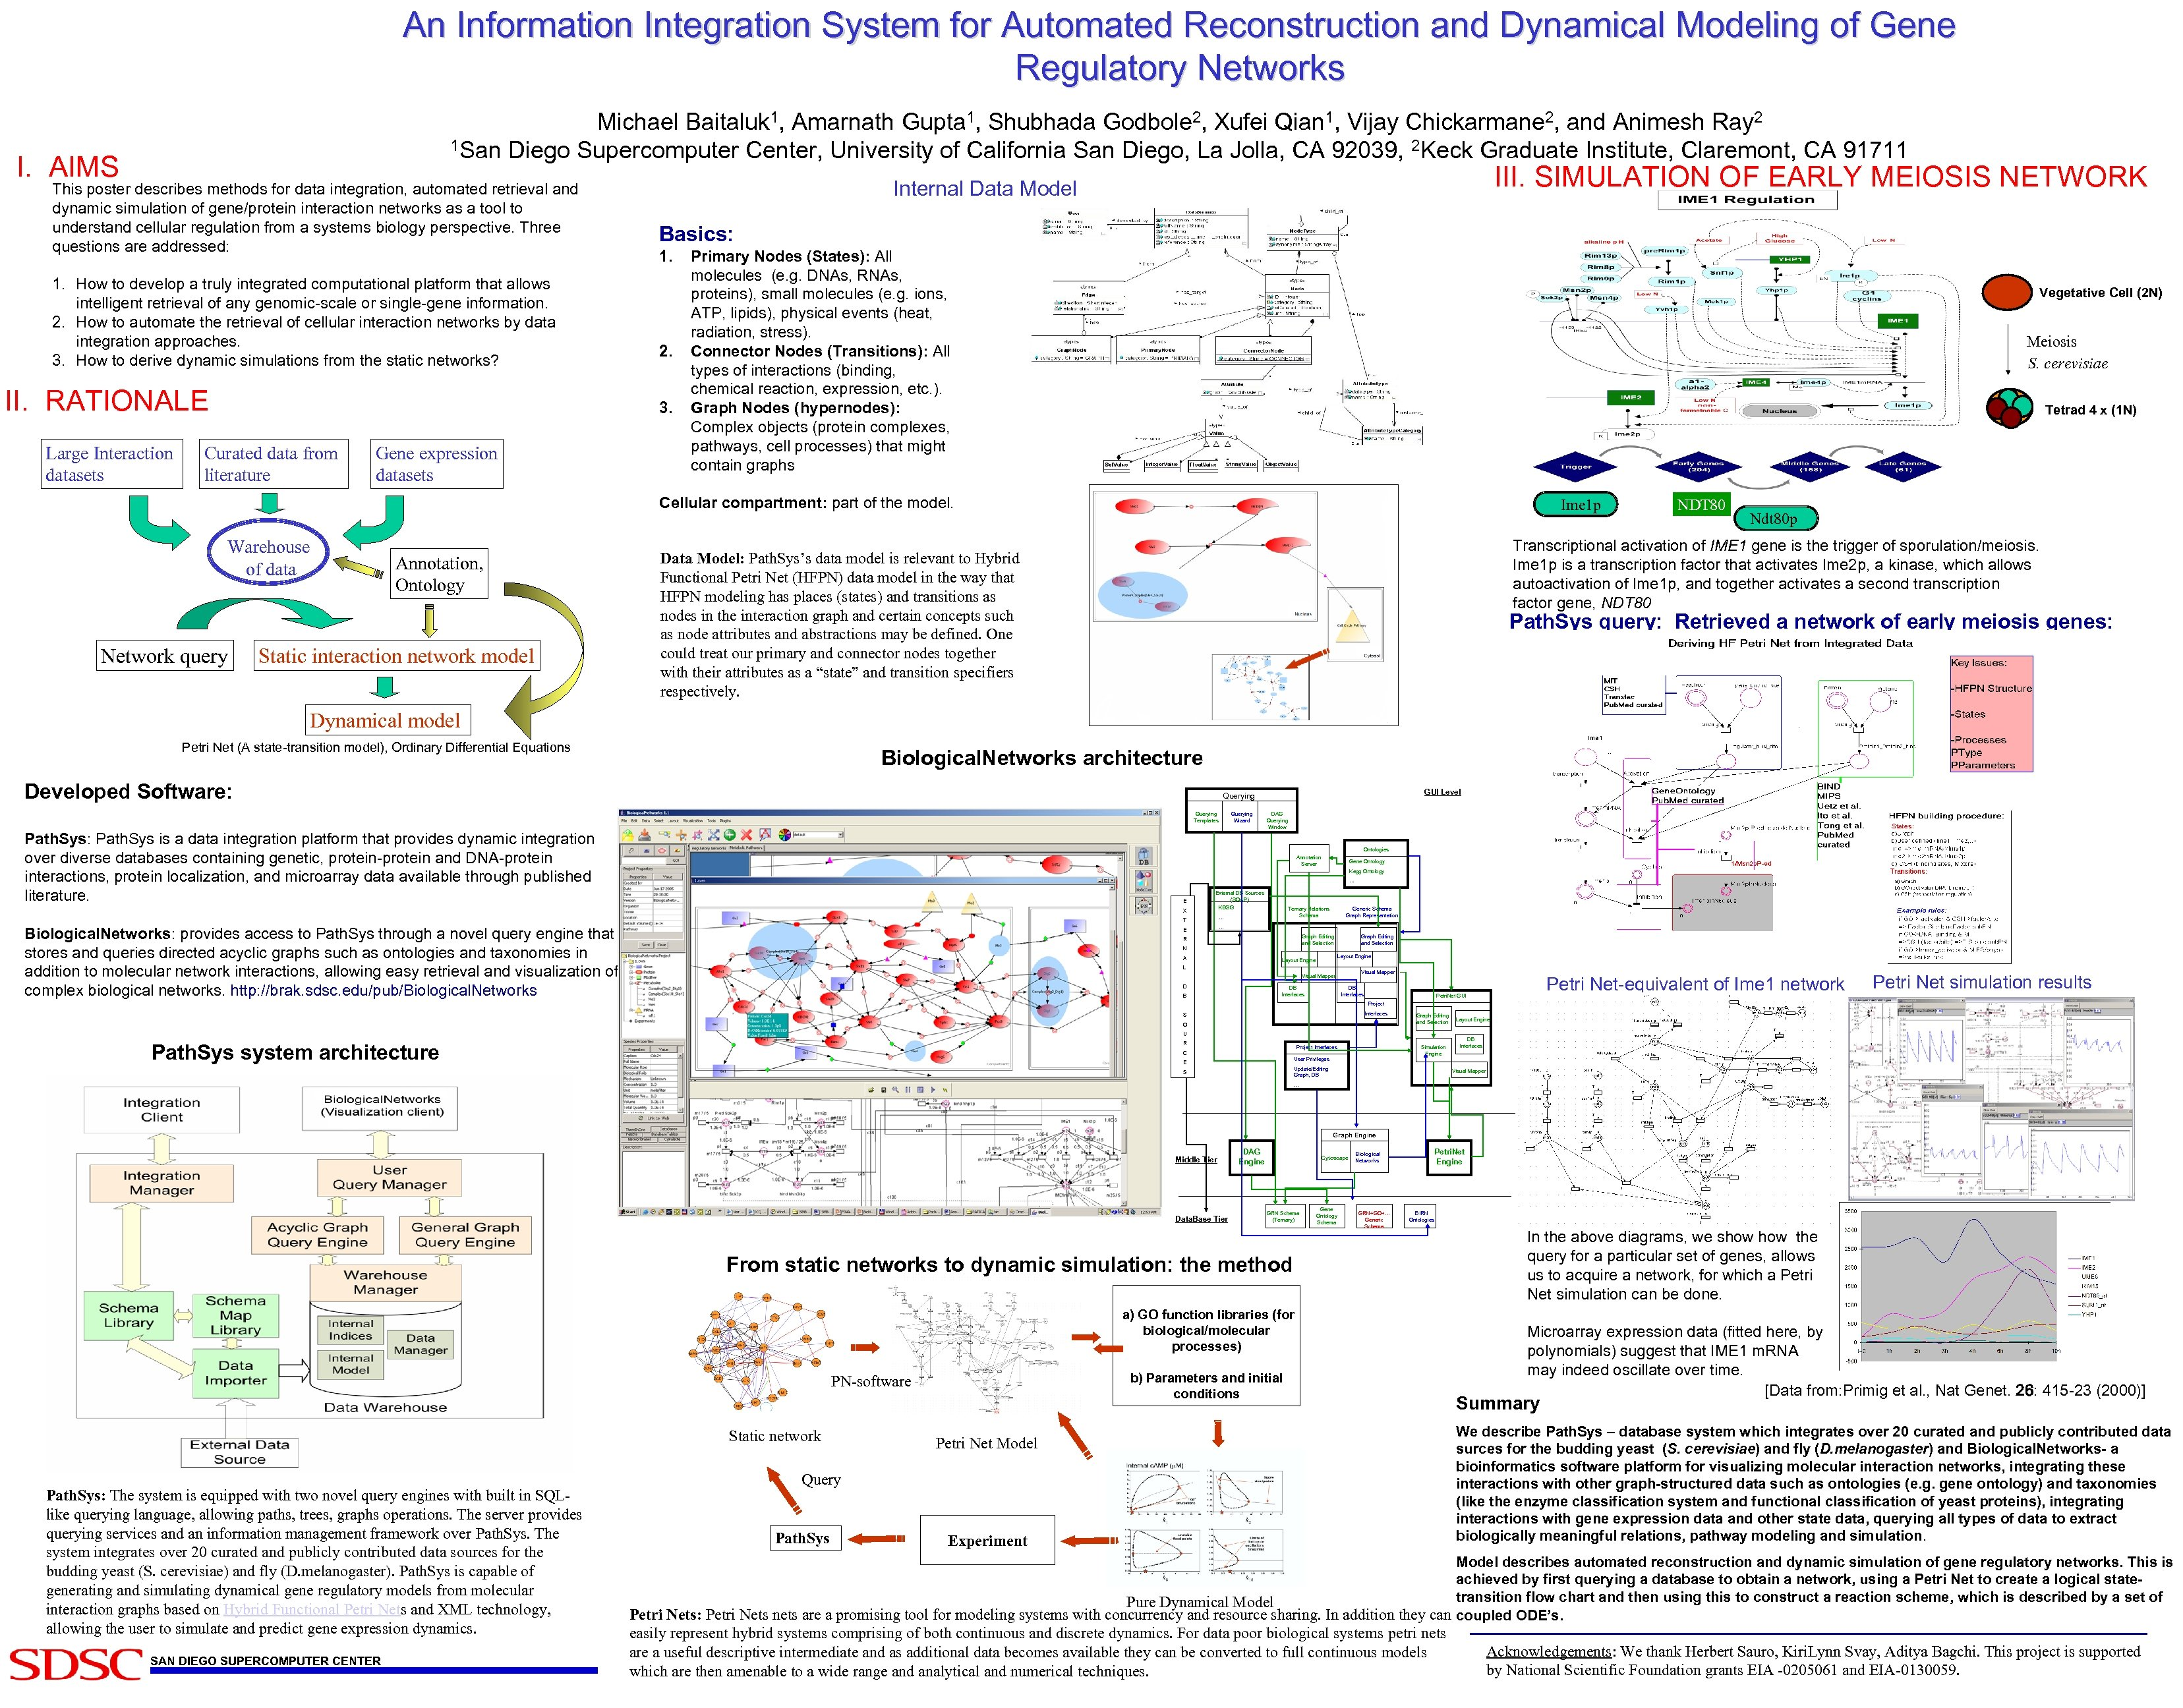 An Information Integration System for Automated Reconstruction and Dynamical Modeling of Gene Regulatory Networks